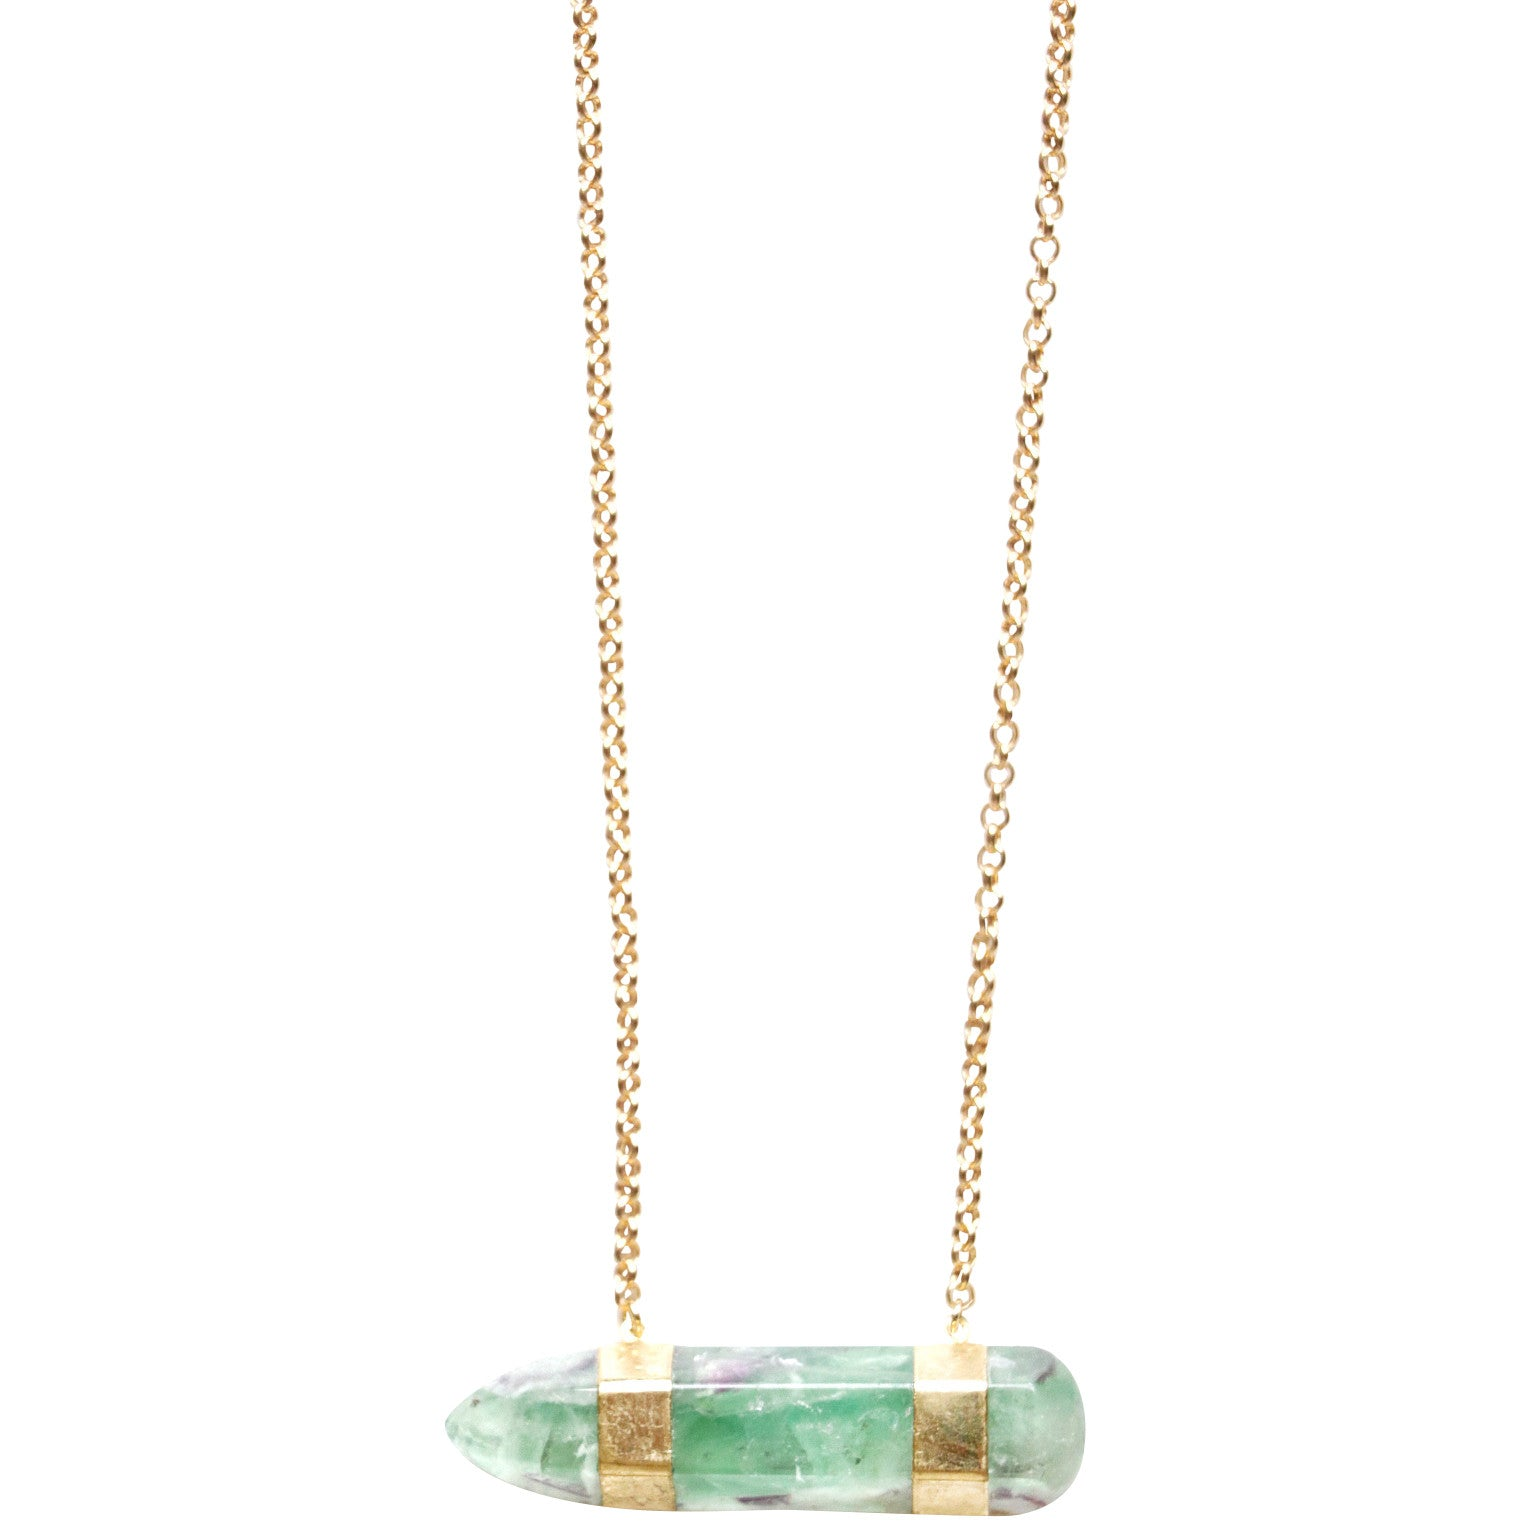 Ocean Green Aventurine stone Electroplated in 24k Gold on 14k Gold filled chain